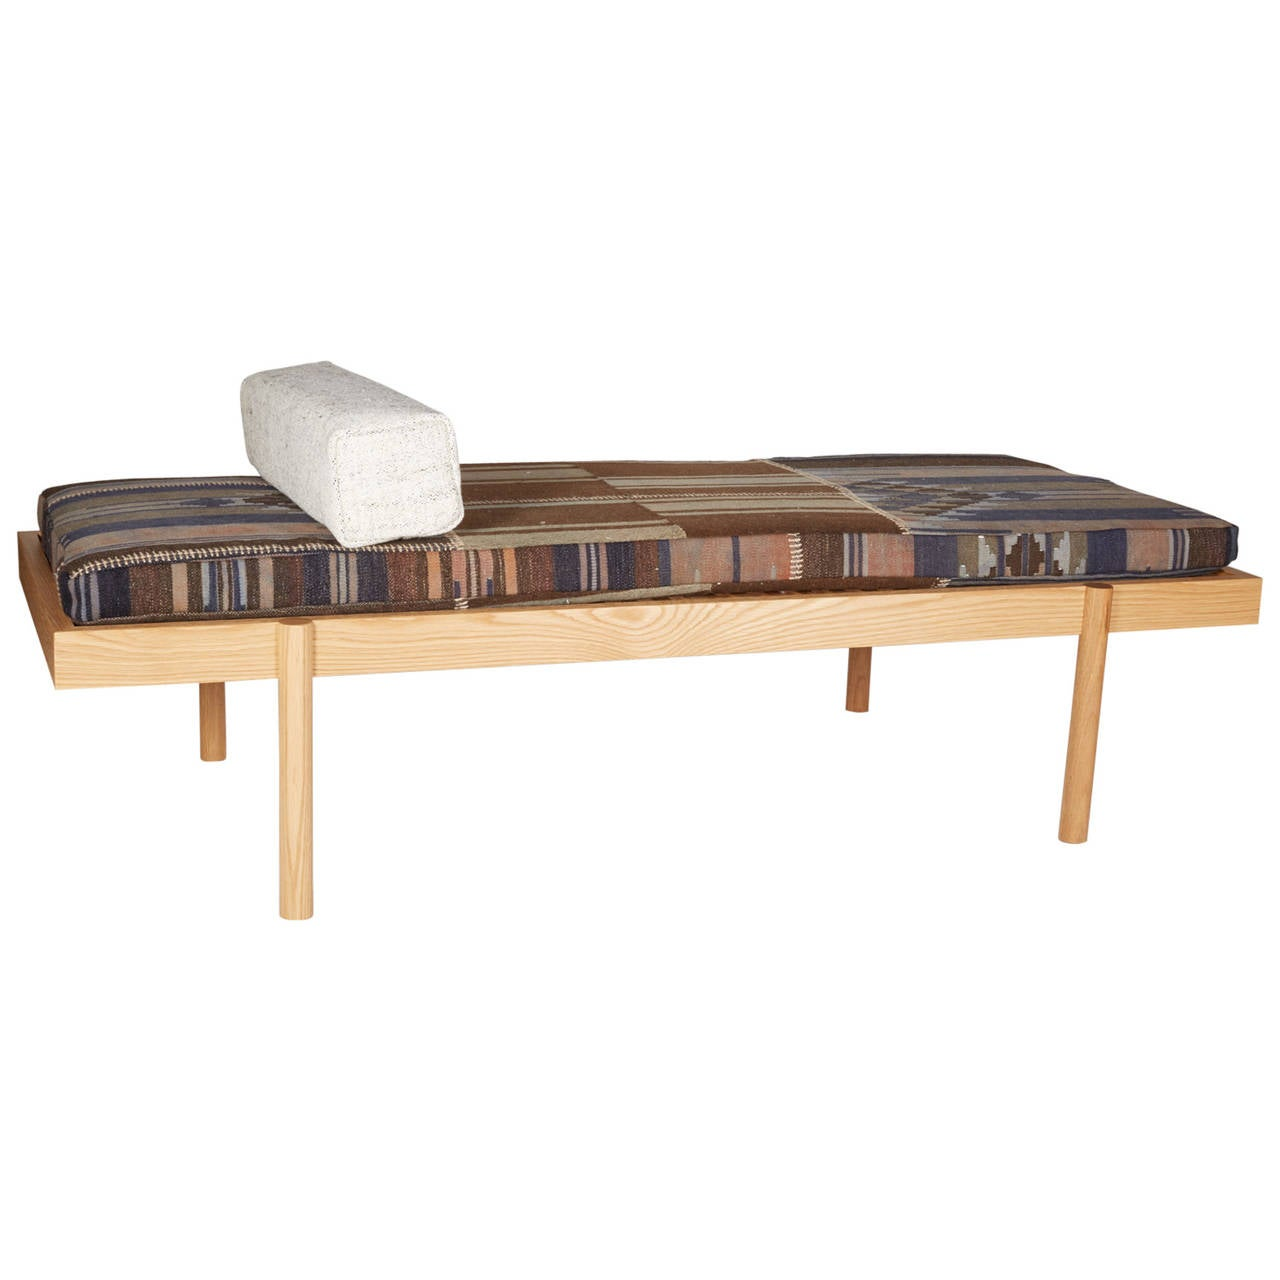 WC2 Daybed by ASH NYC with Limited Woven Accents Kilim Upholstery, Four of Five 1